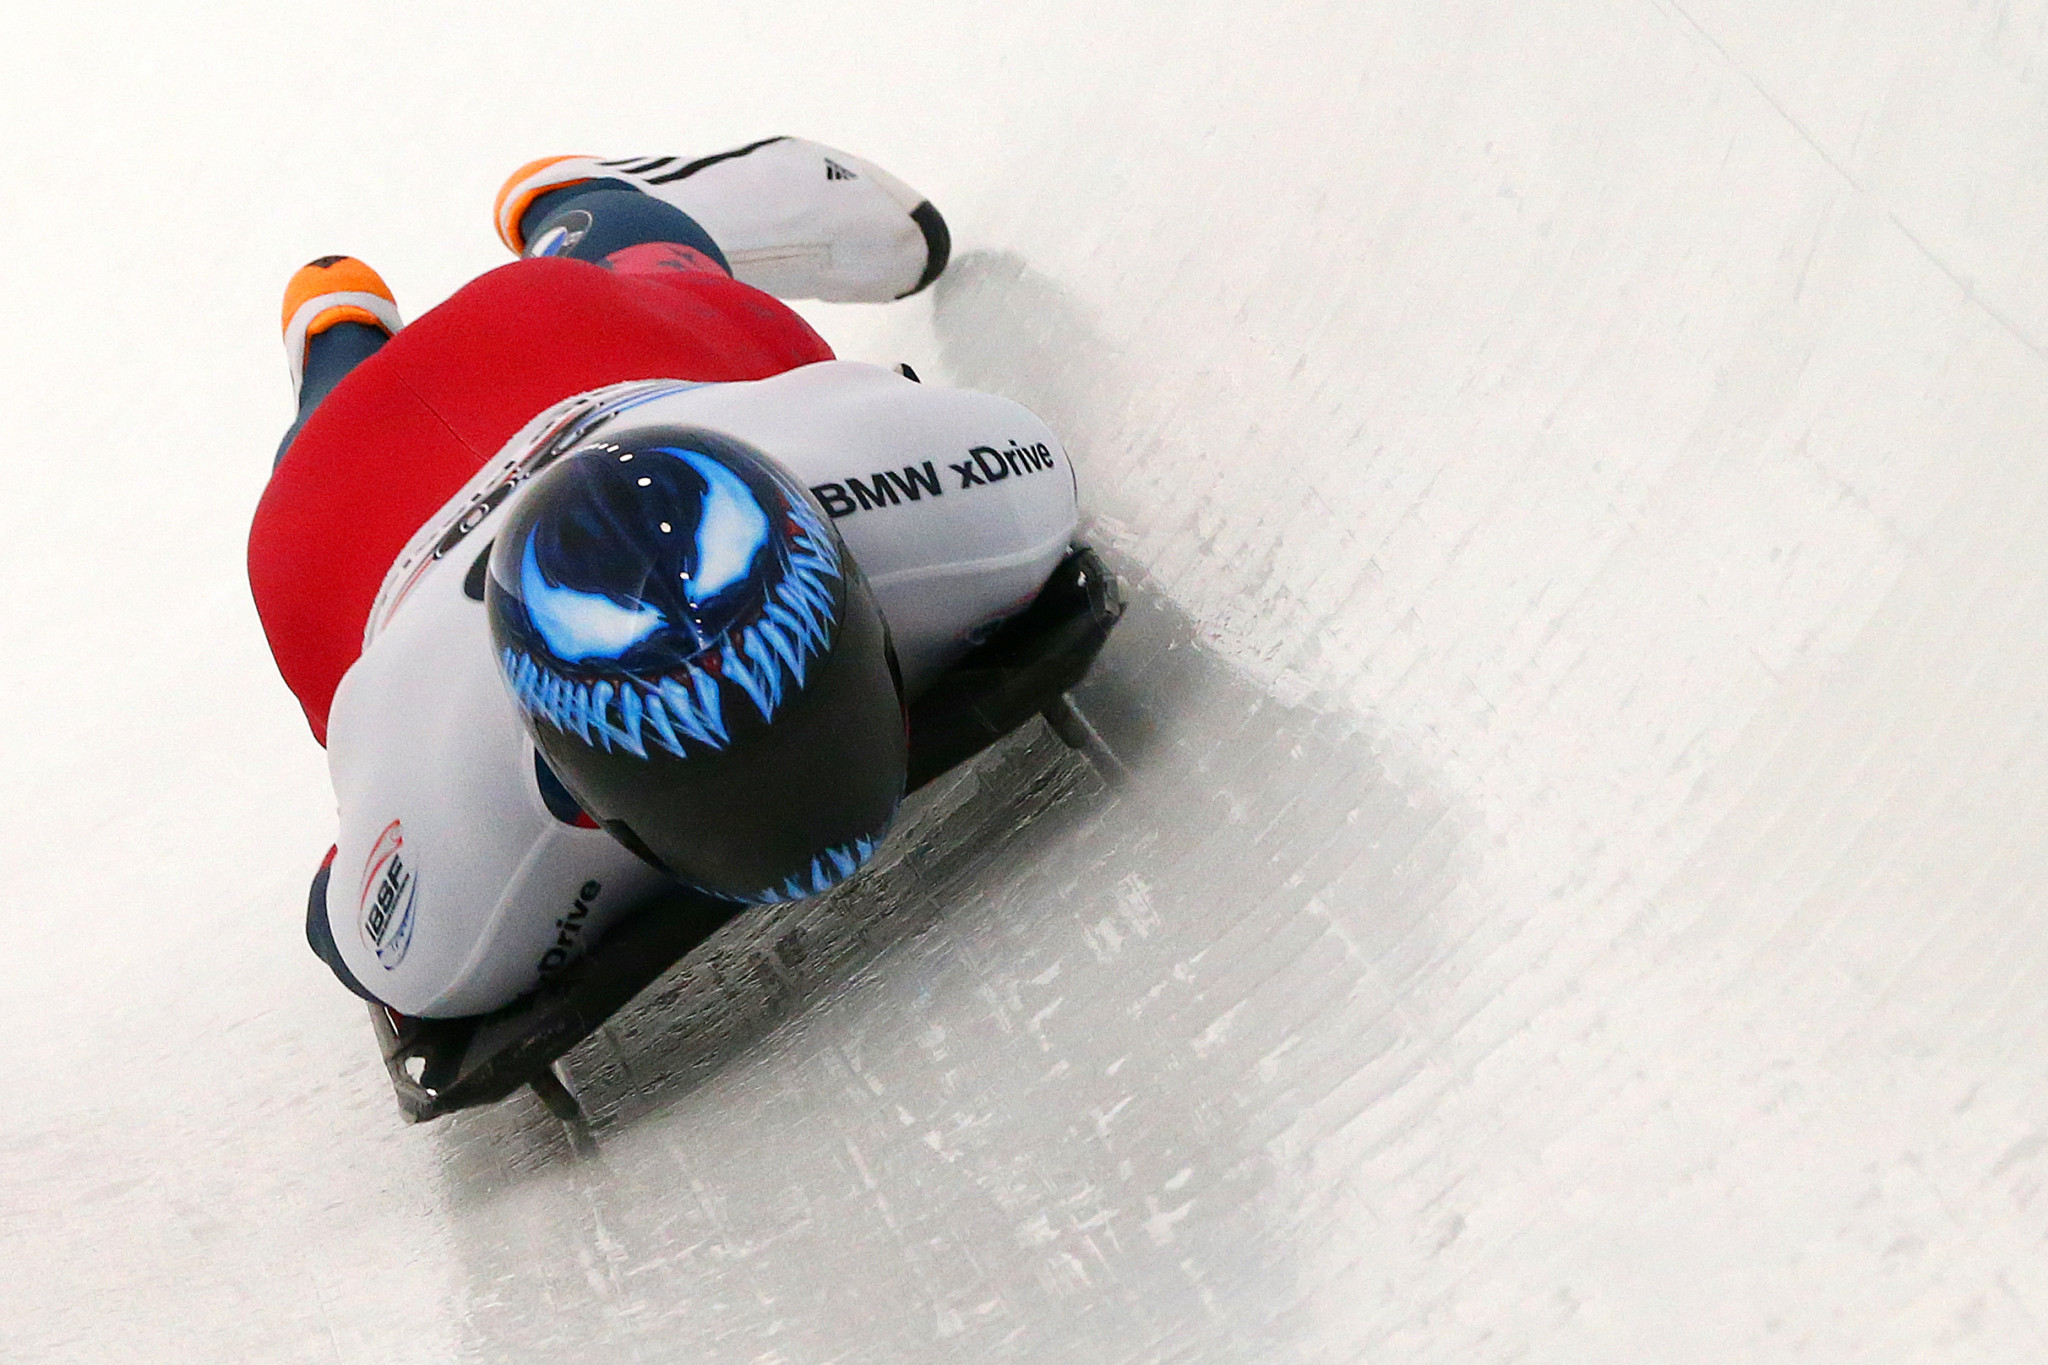 Florian and Kwaza secure USA Bobsled and Skeleton awards after impressive seasons